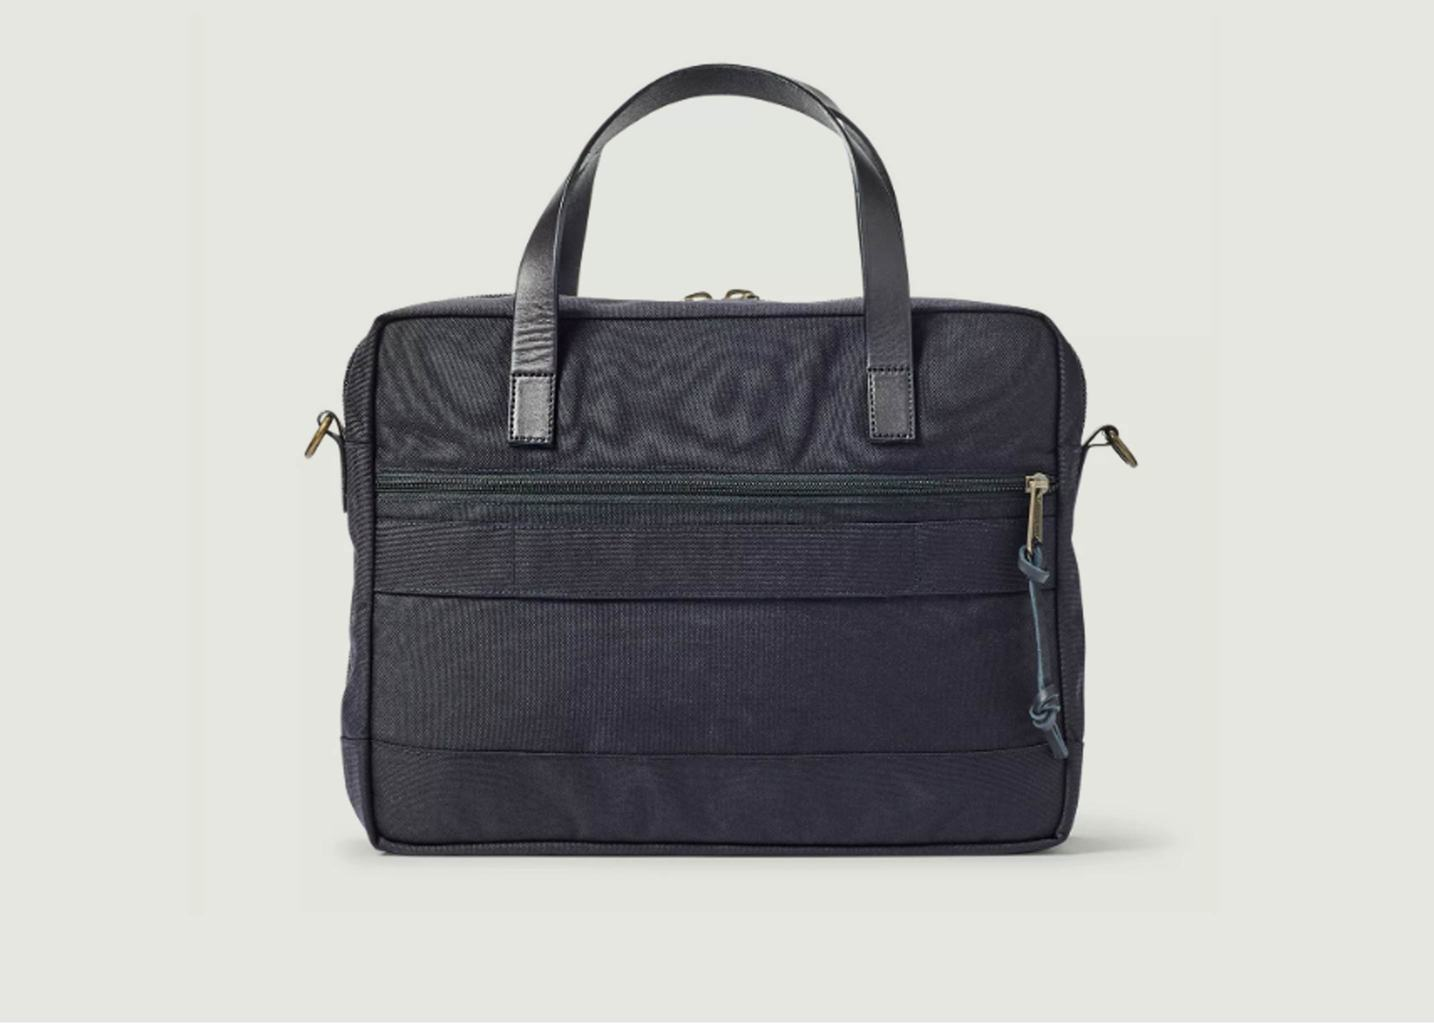 Sac Attaché-Case Dryden - Filson